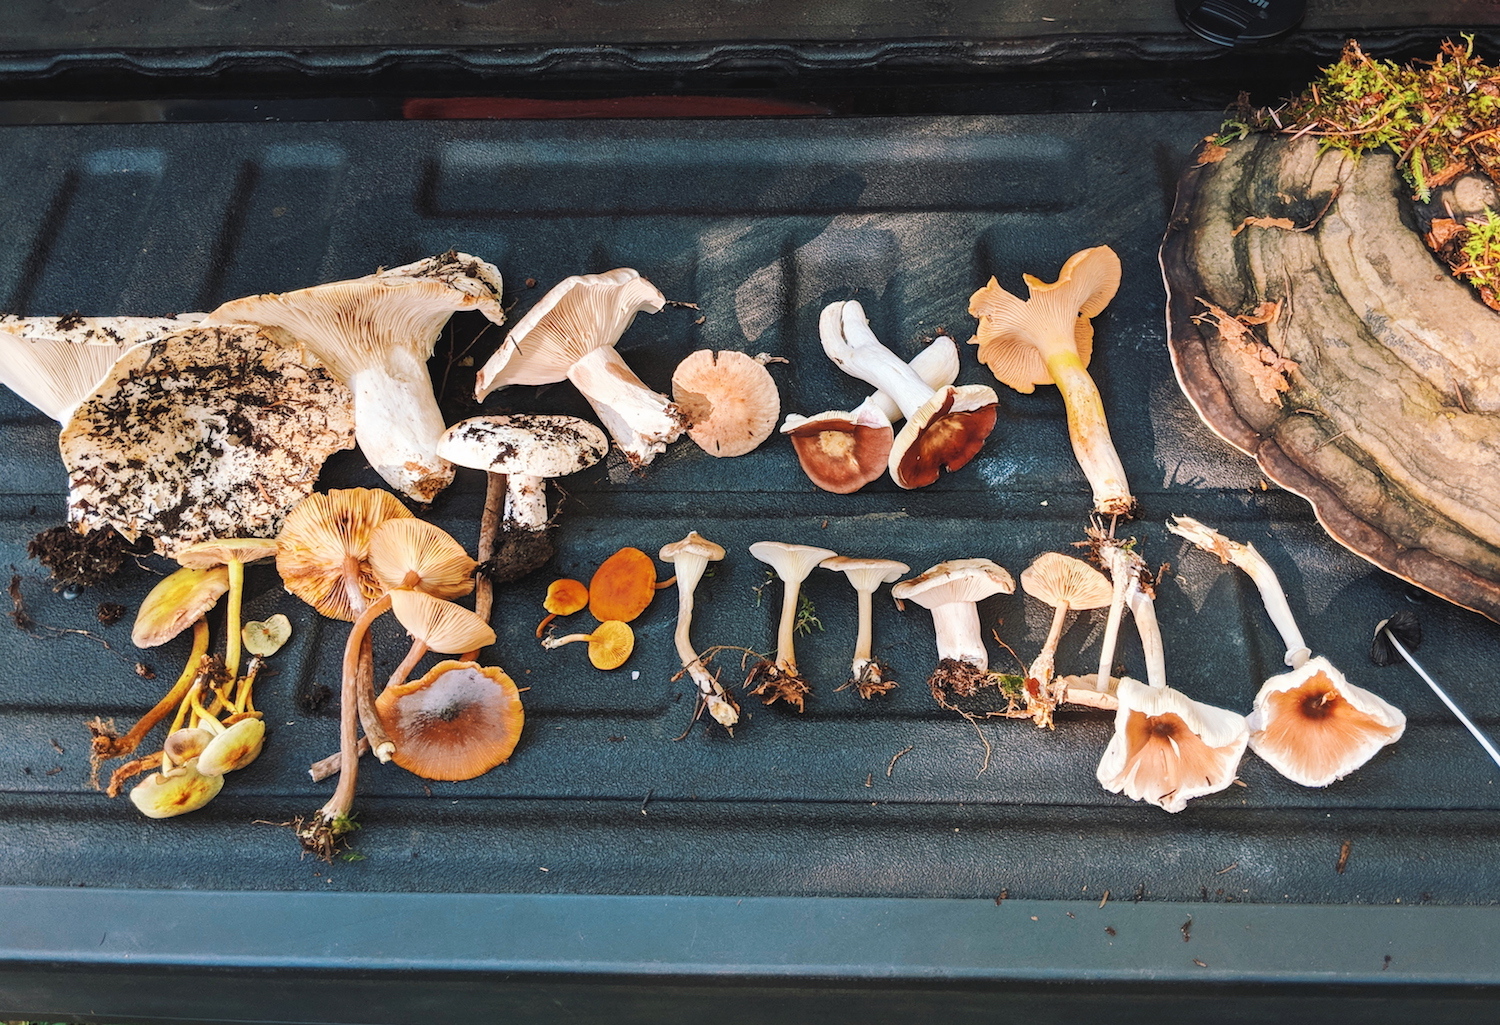 We're still trying to identify all of them, but I believe the reddish ones are  Russula Atropurpurea , the little black one is a type of ink cap, and I'm almost positive the light orange one in the upper right corner is a golden chanterelle.